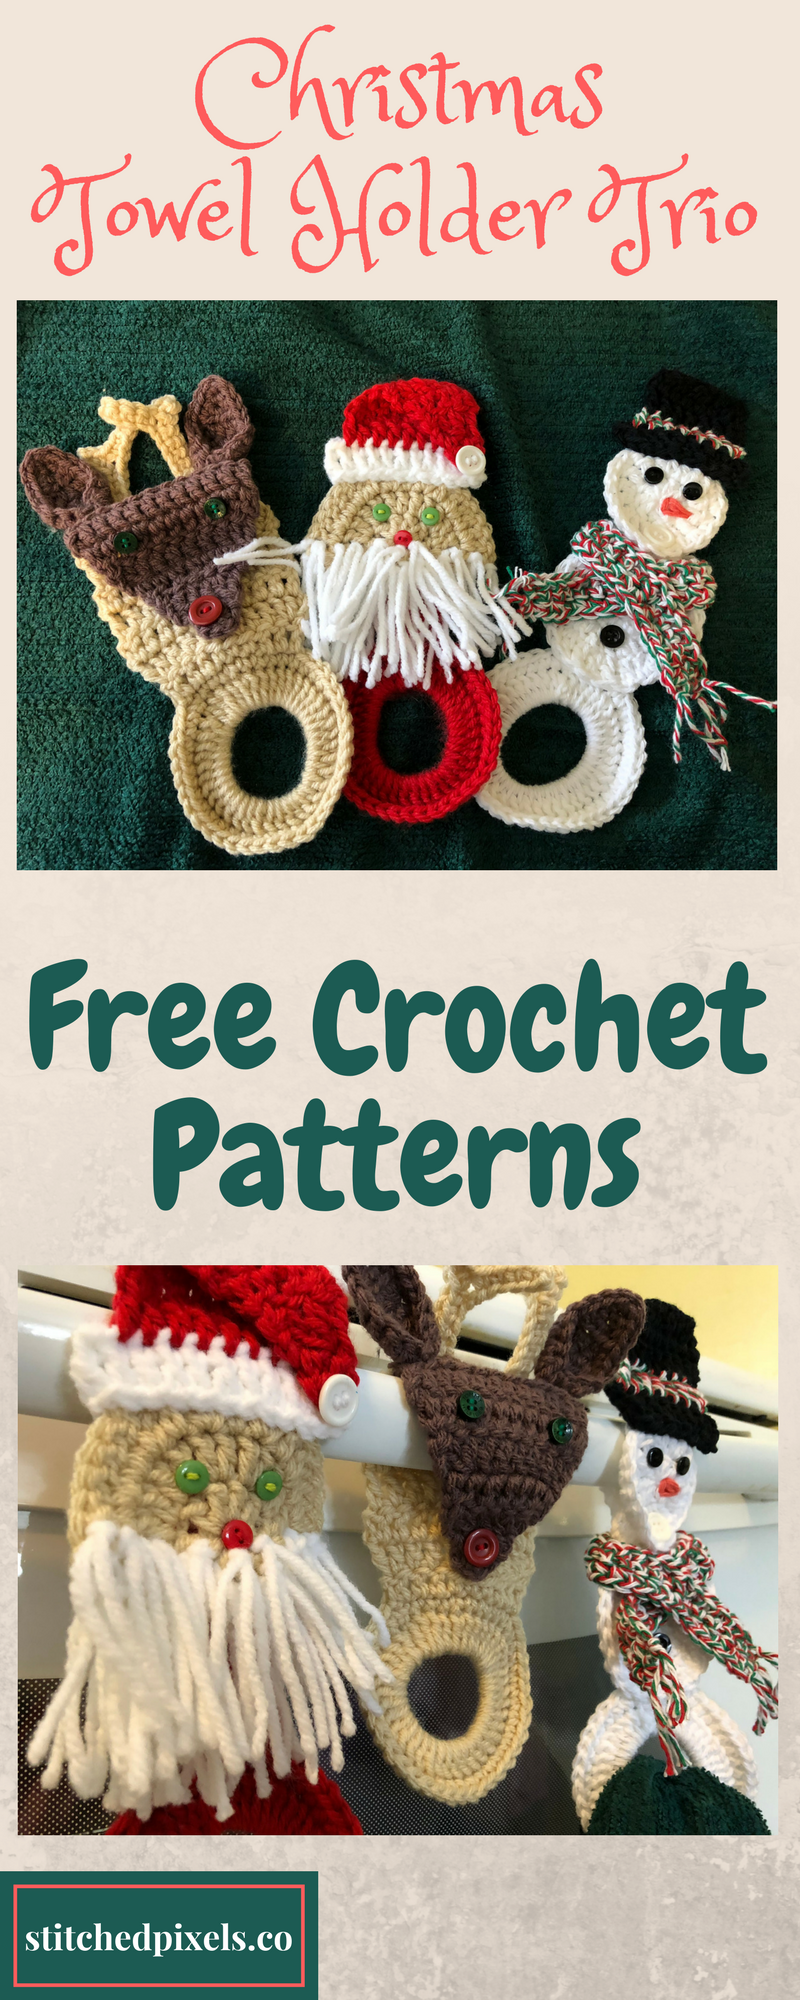 Use this free crochet pattern to make your own Reindeer Towel Holder ...